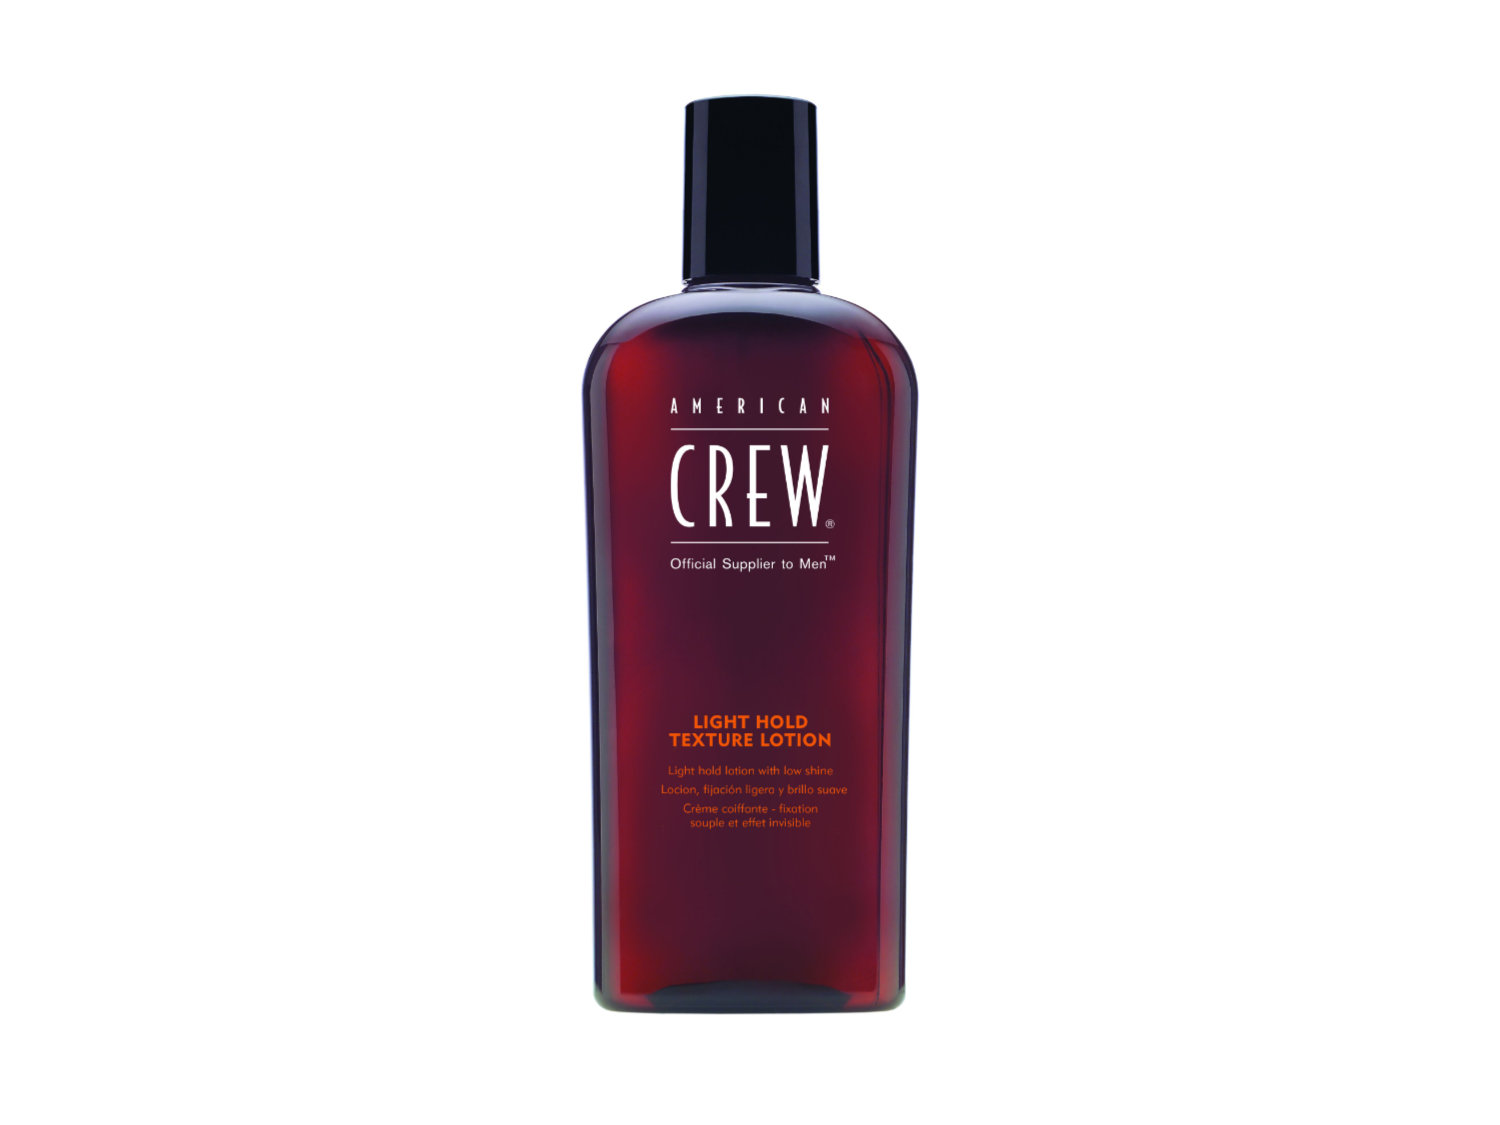 Arma Beauty - American Crew - Light Hold Texture Lotion